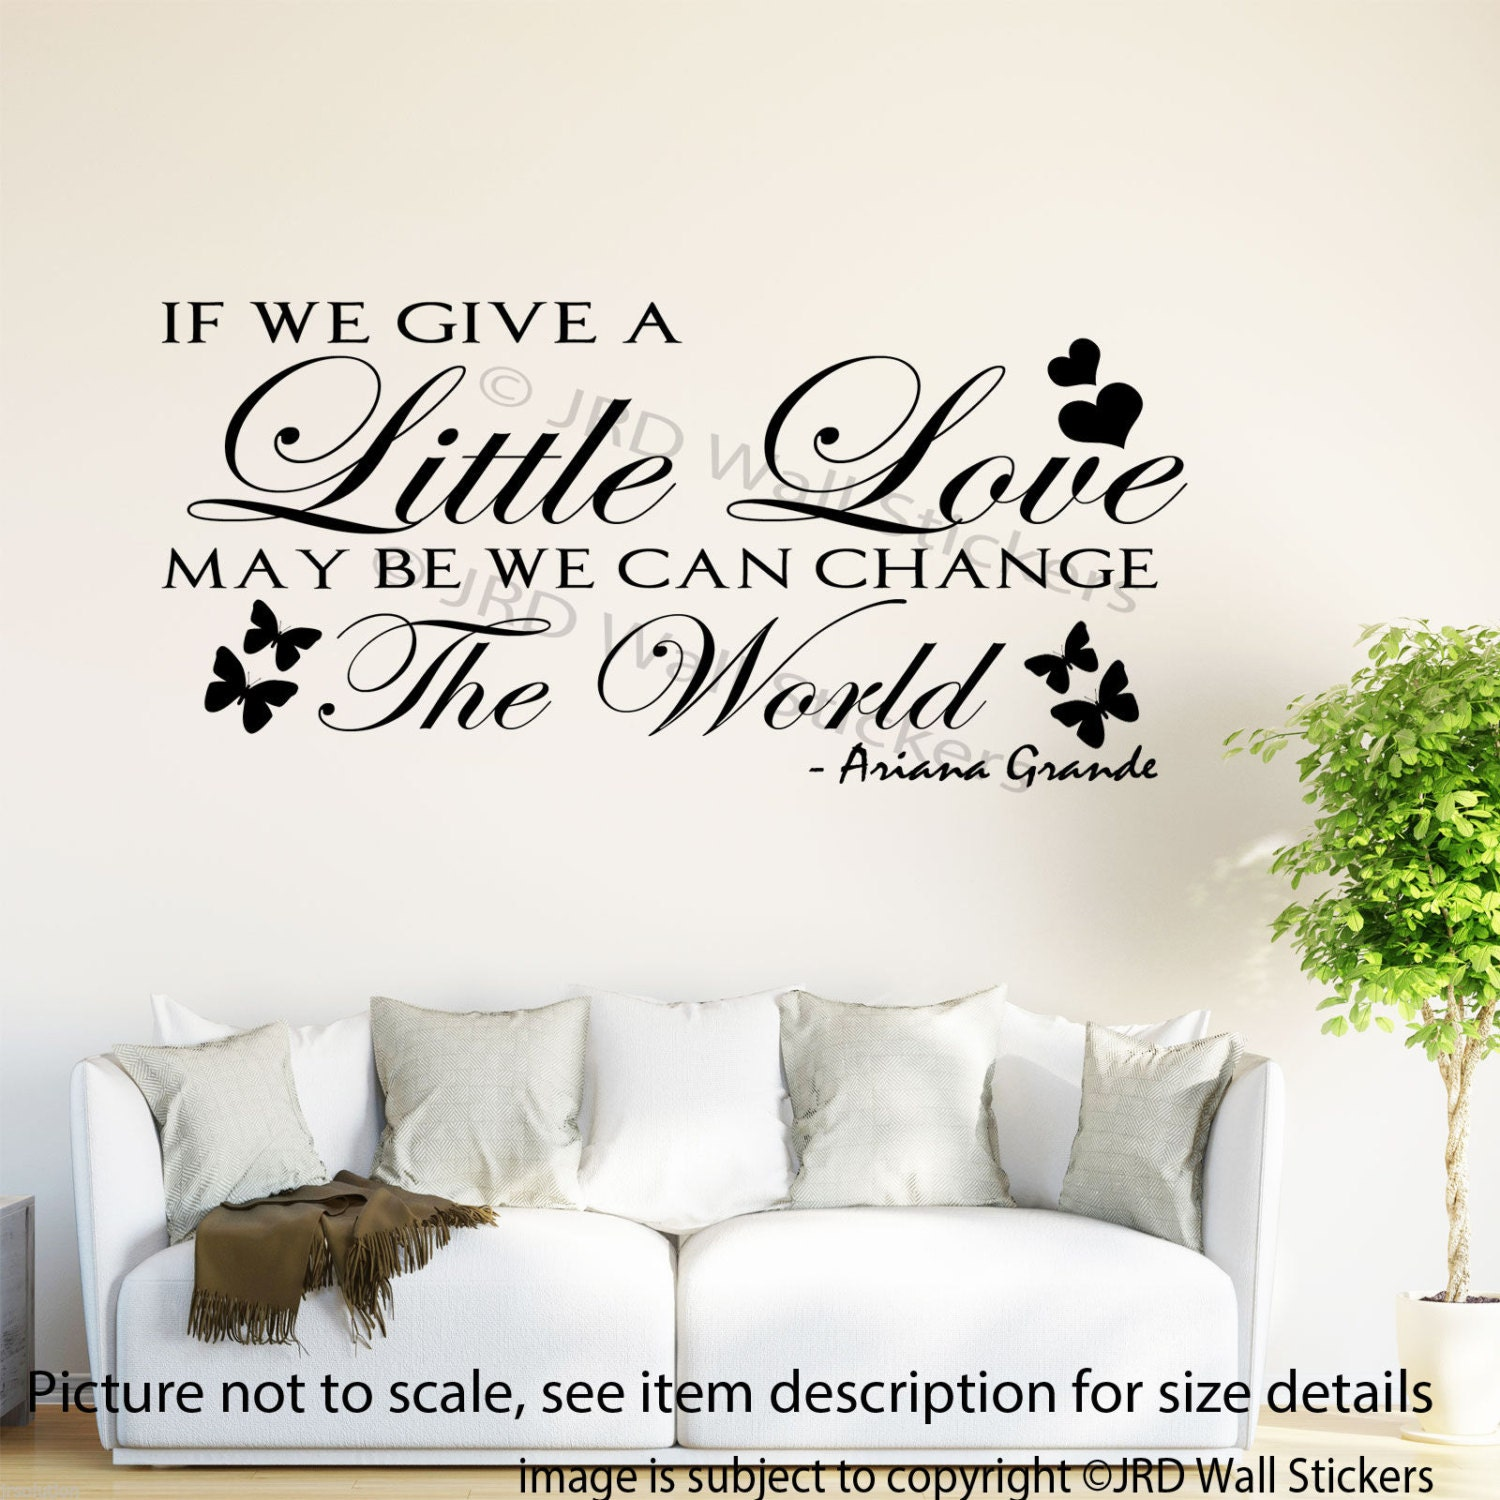 ariana grande quote wall stickers if you give a little like this item